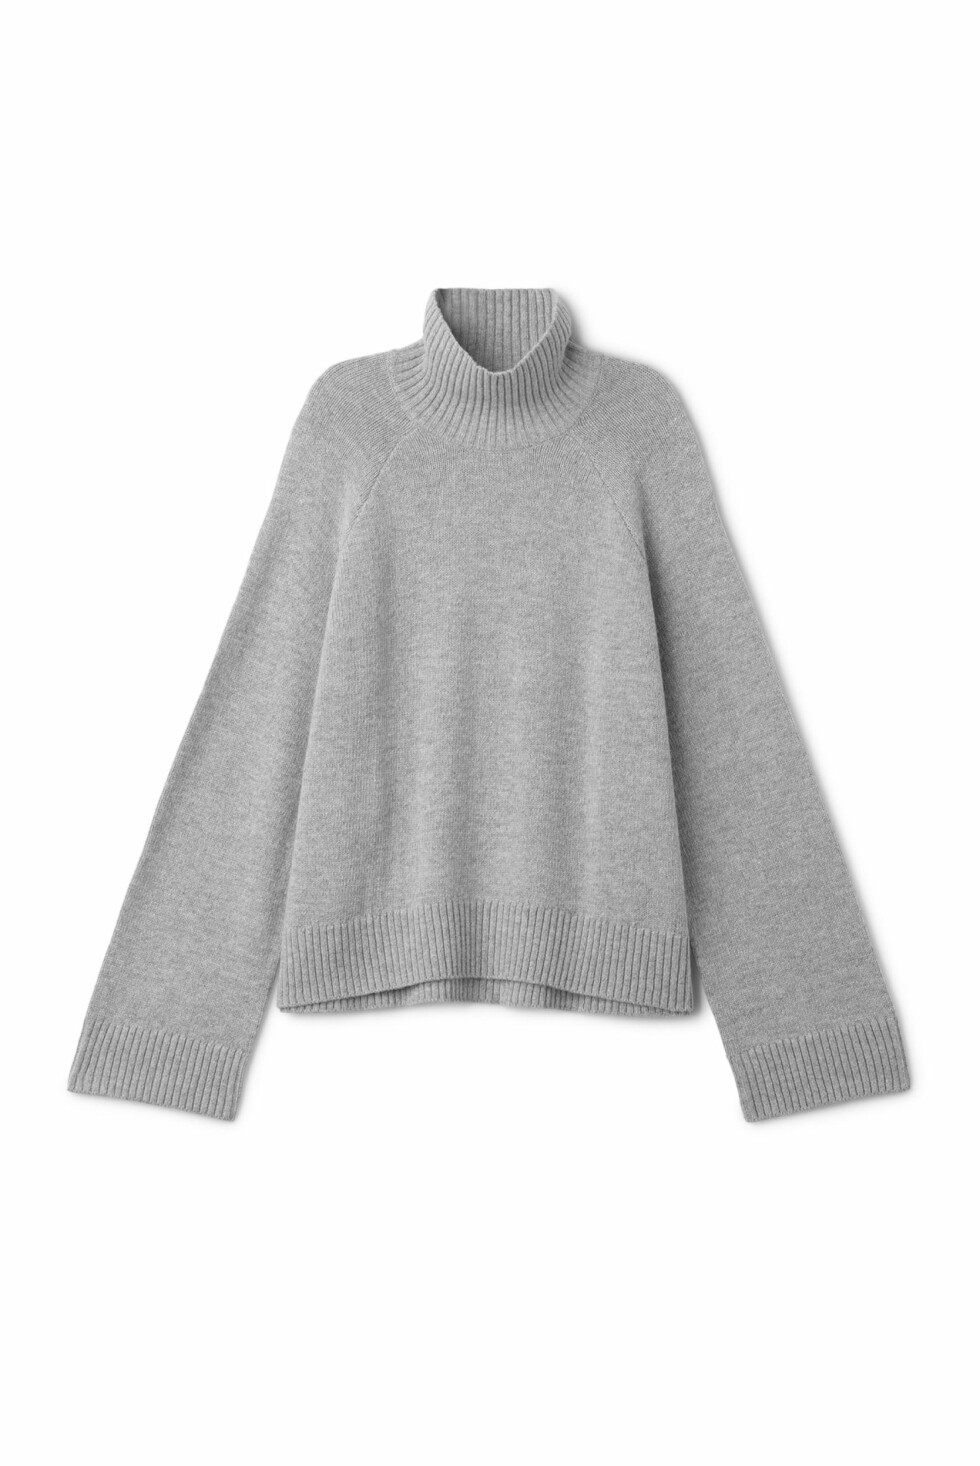 <strong>Genser fra Weekday |450,-| https:</strong>//www.weekday.com/en_sek/women/categories/new-arrivals/_jcr_content/subdepartmentPar/productlisting_86054396.products/product.avant-sweater-grey-melange.0587797002.html